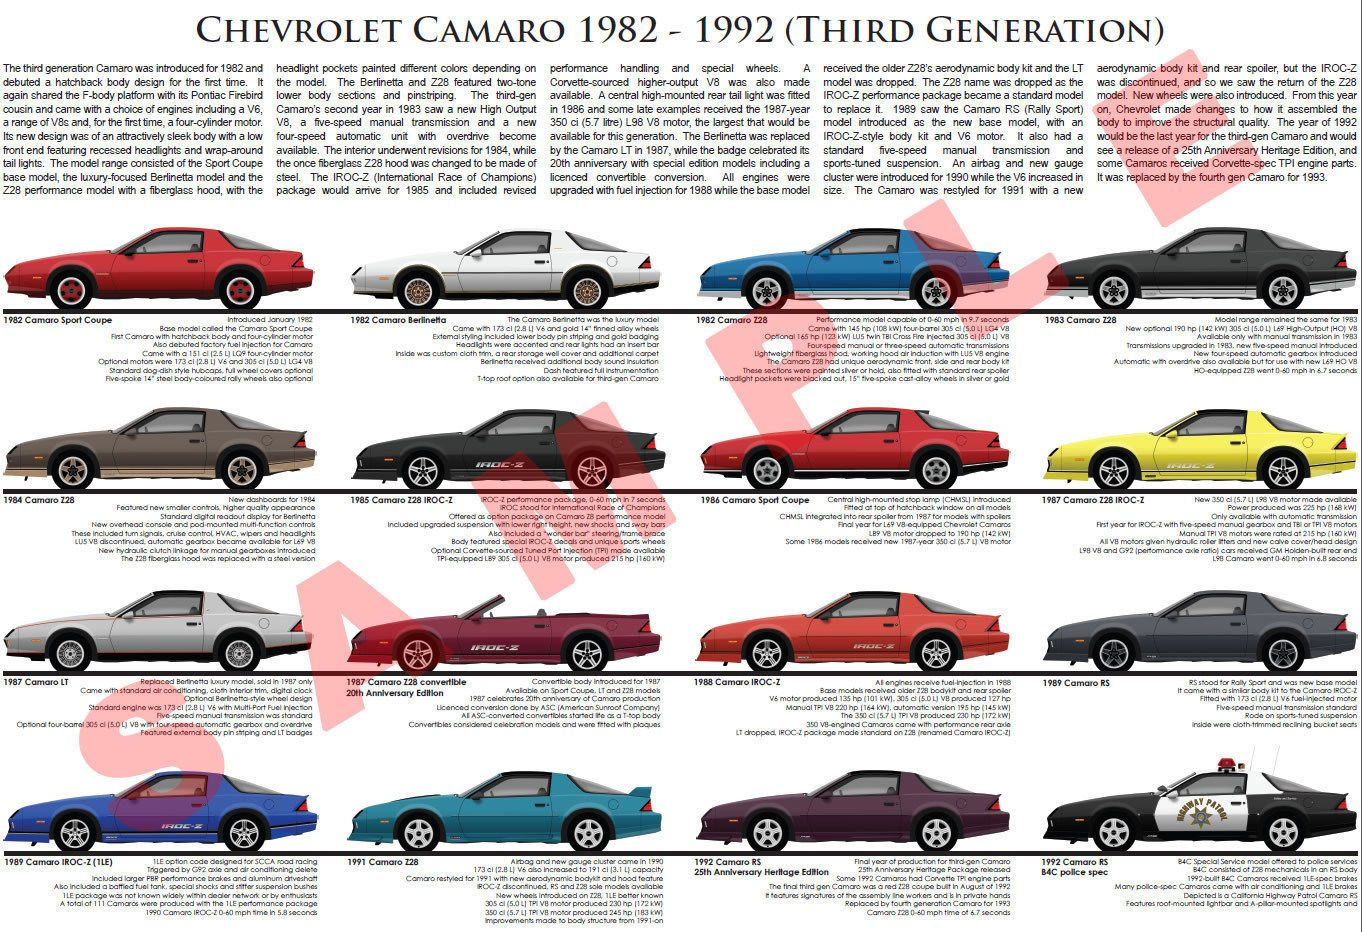 Chevrolet Camaro Third Generation Model Chart Sport Z28 Berlinetta